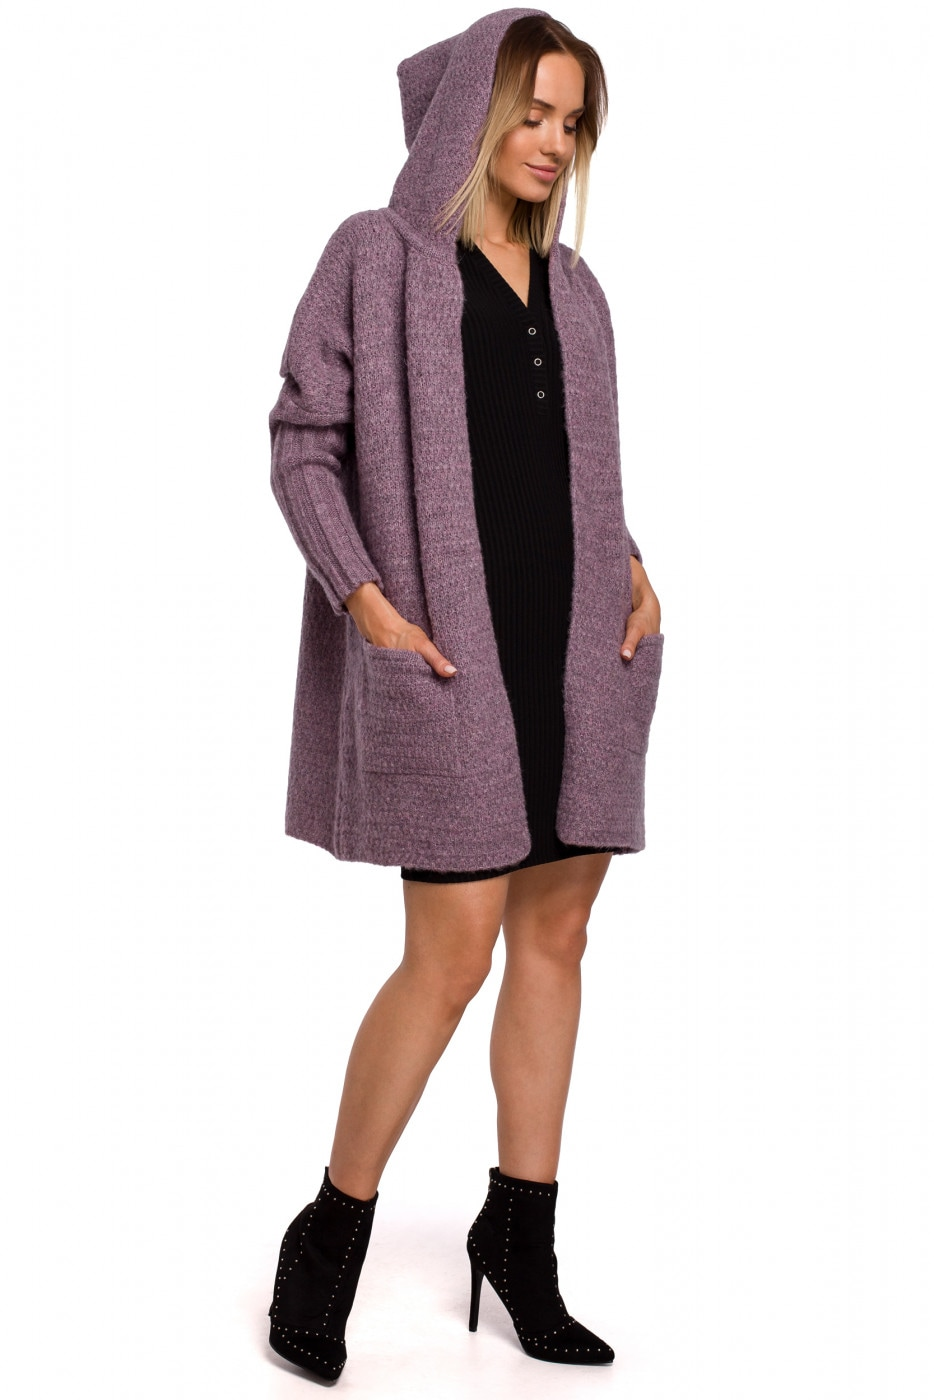 Made Of Emotion Woman's Cardigan M556